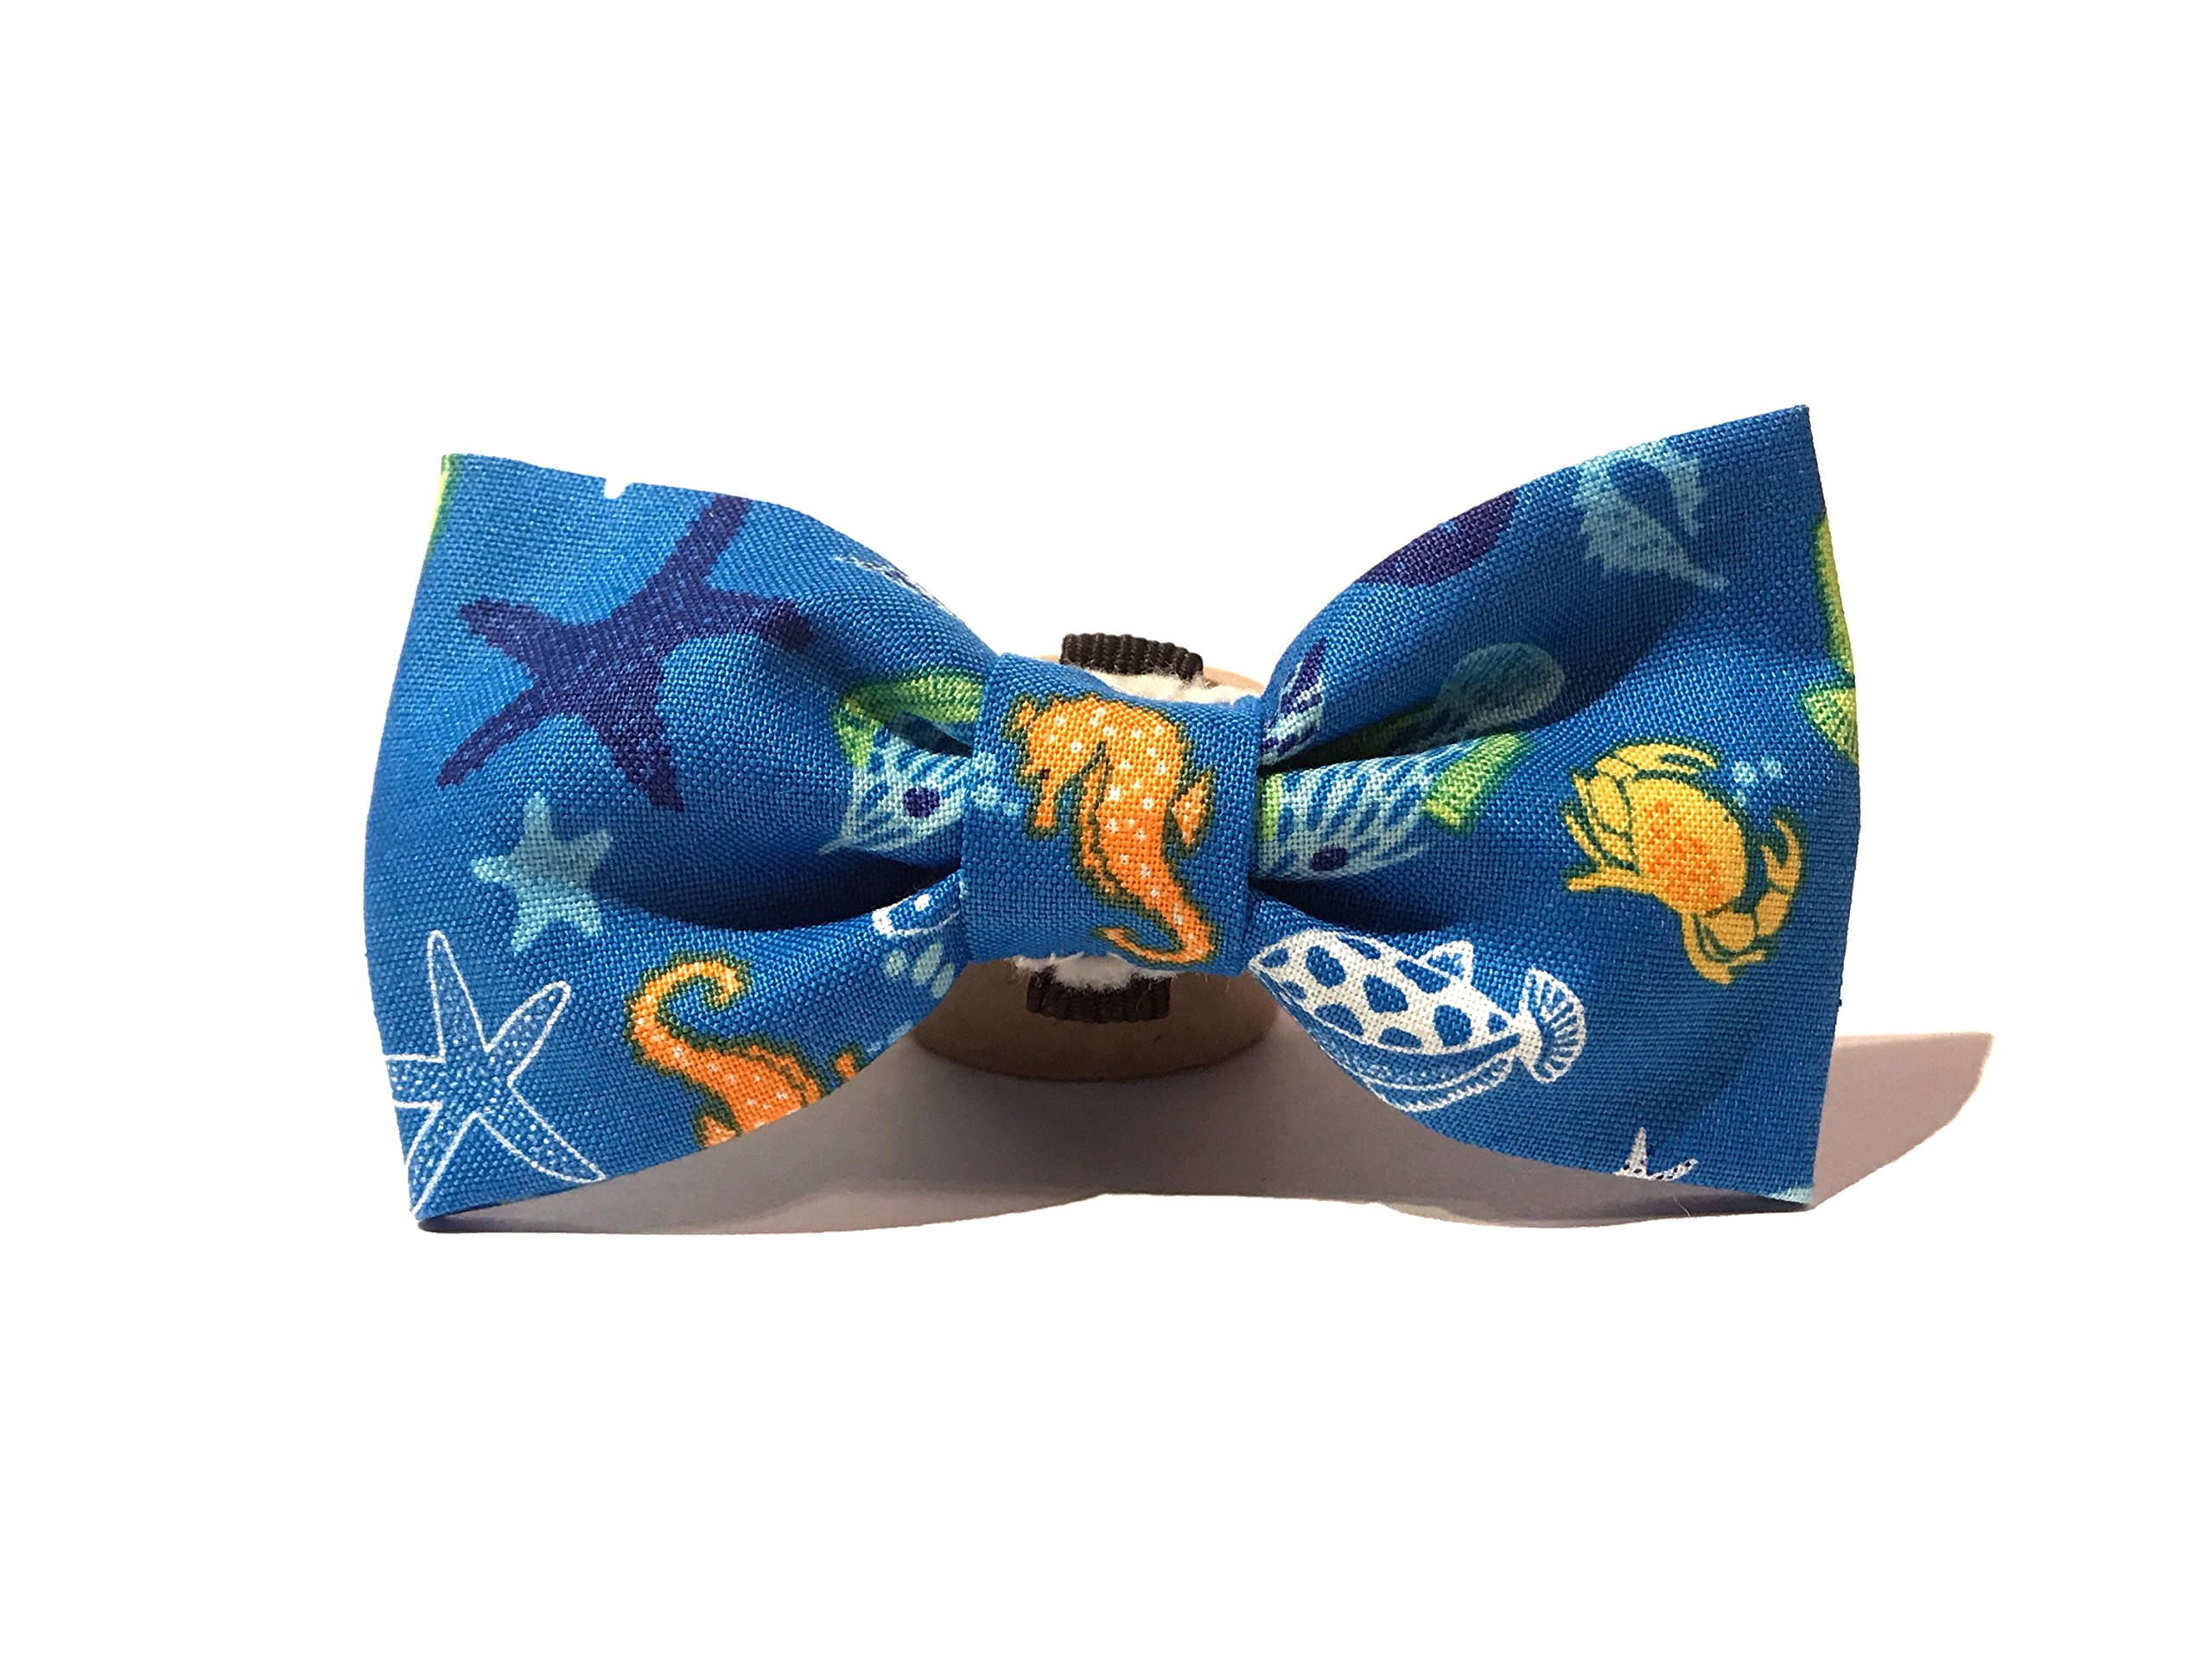 Very Vintage Design Dog Cat Collar Bow Tie Sea Creatures Bright Blue Nautical & Preppy Summer Seahorse Crabs Starfish Hand Crafted Collection Organic Cotton Personalized Adjustable Pet Bowtie